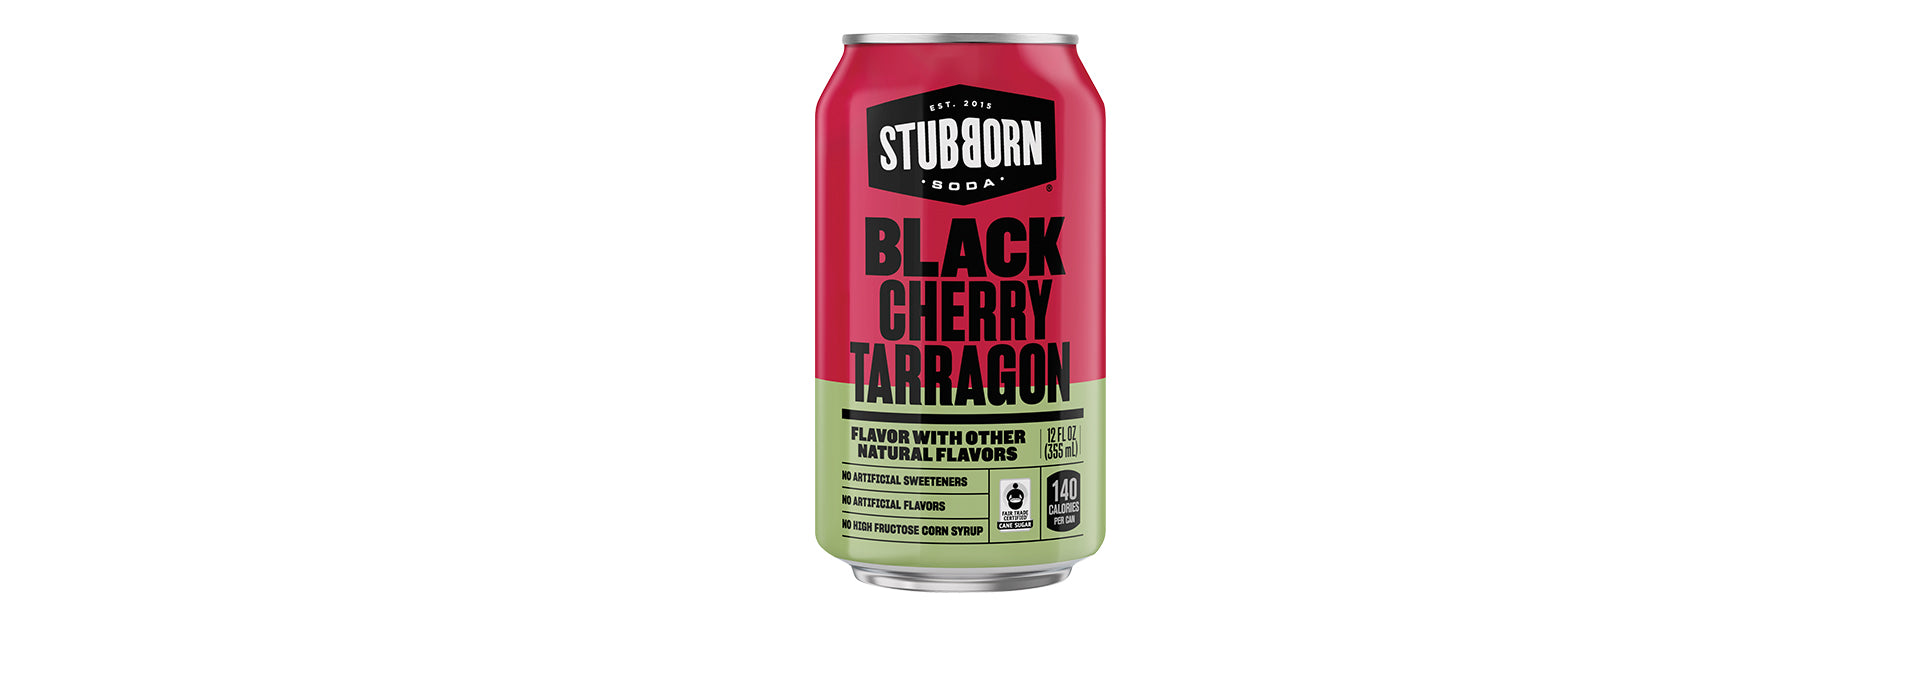 Stubborn Black Cherry Tarragon